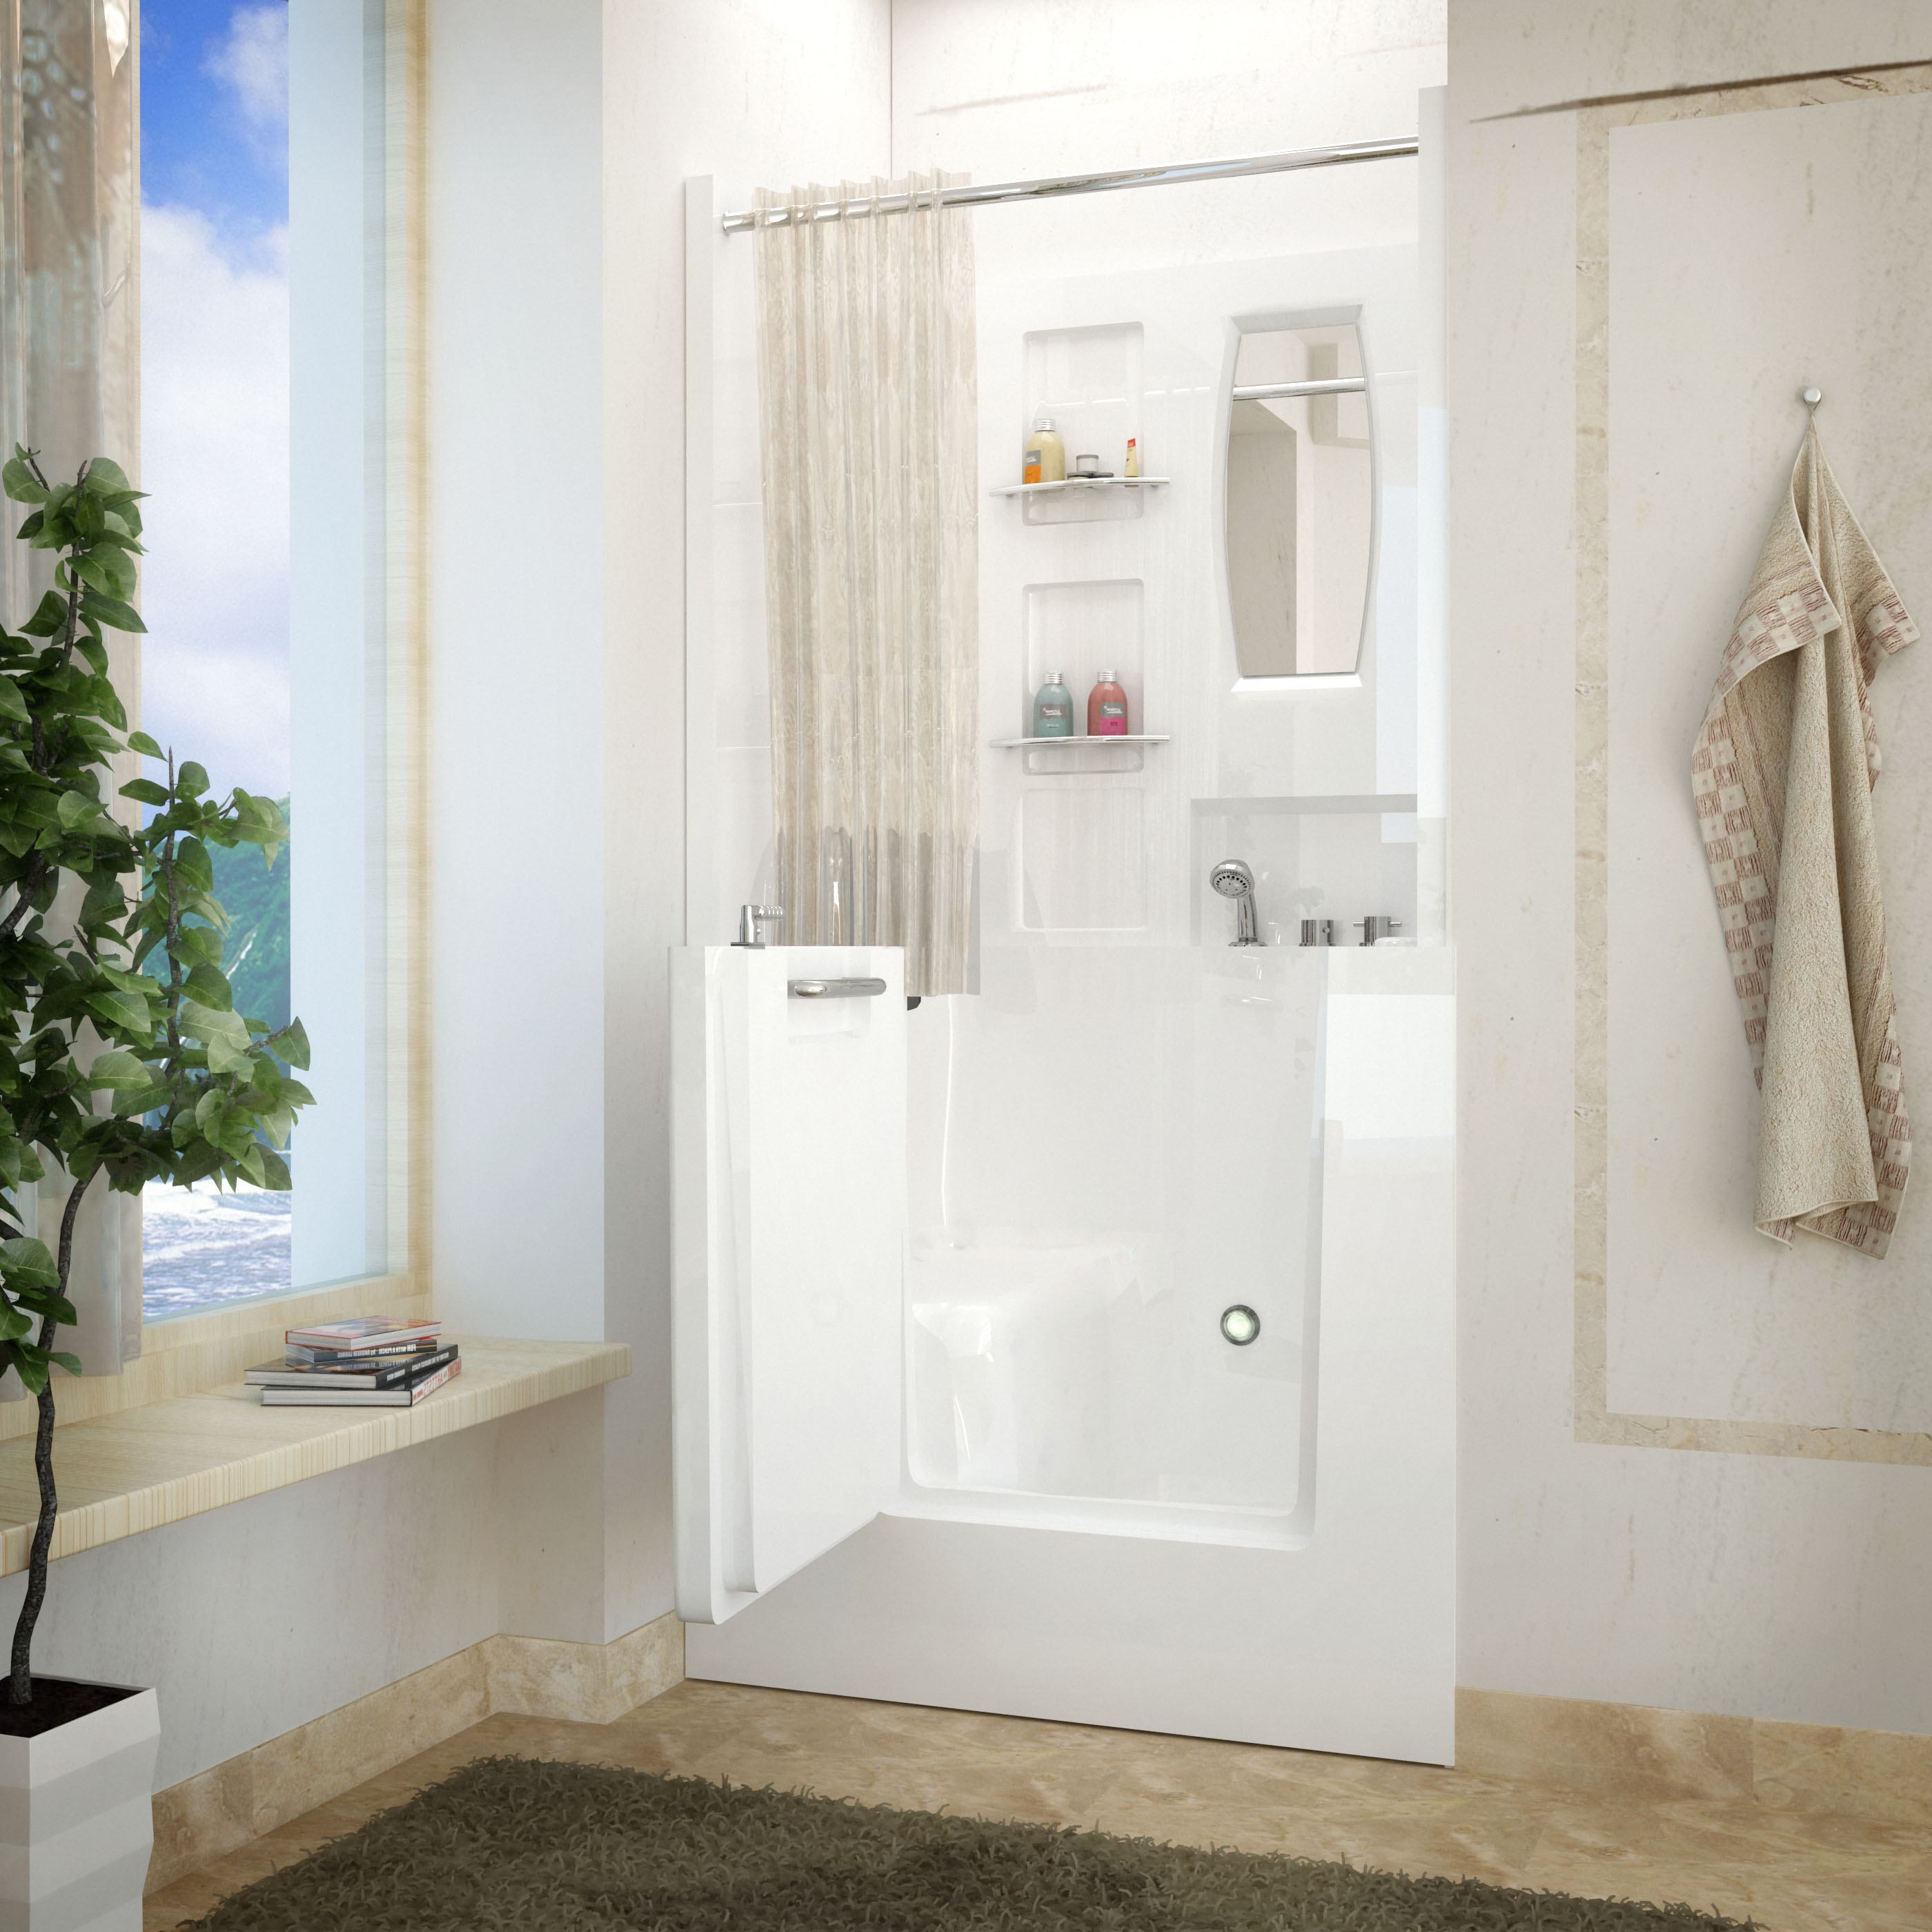 Bathroom tubs with shower